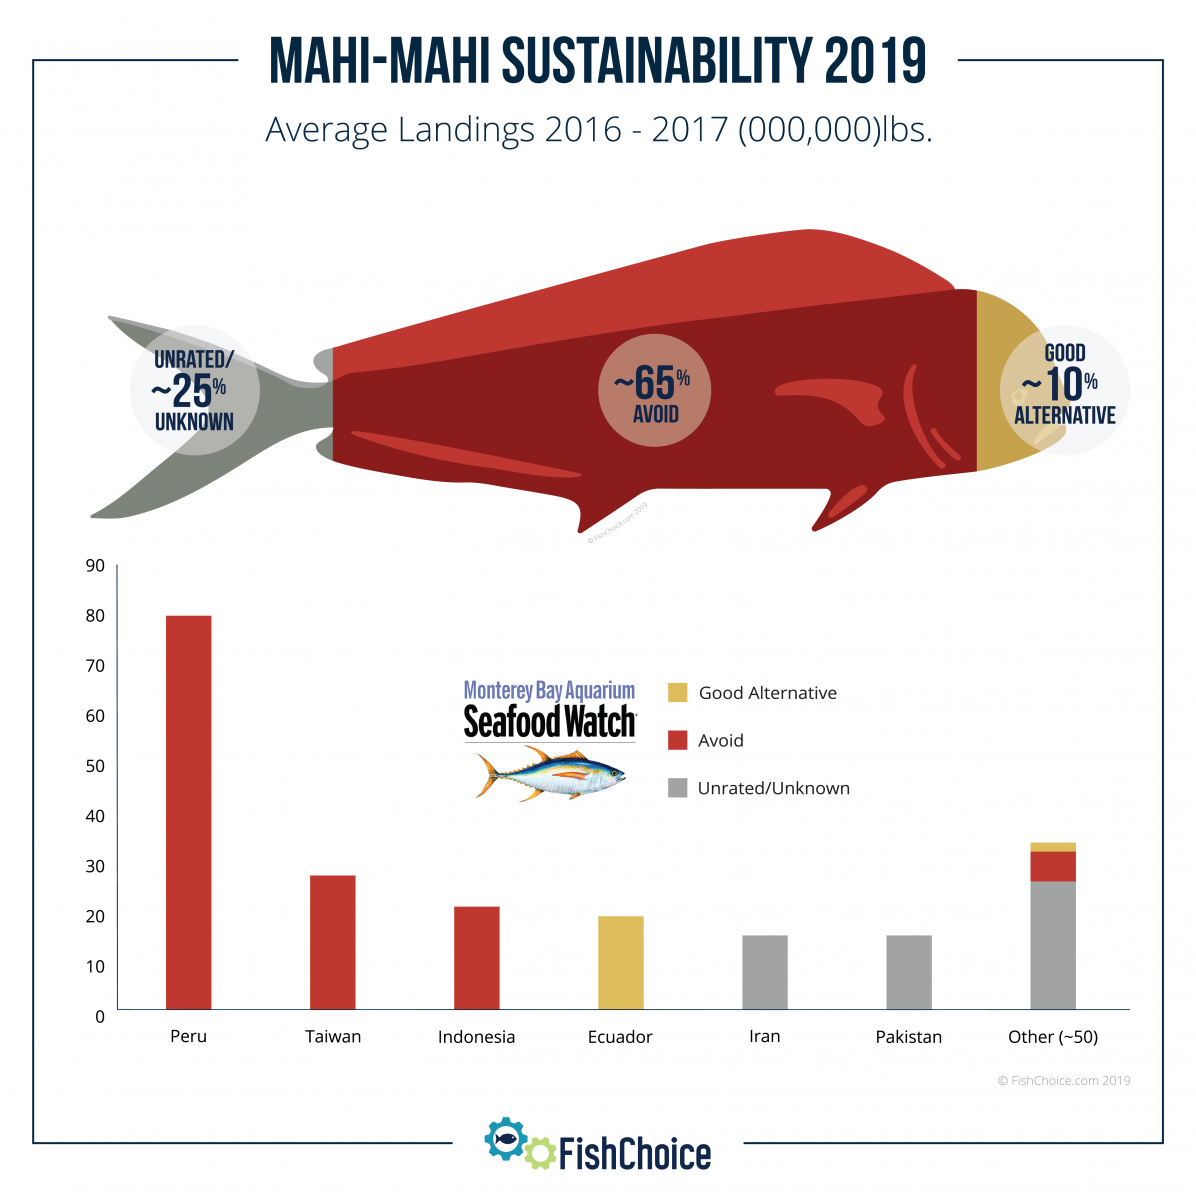 Mahi-Mahi Sustainability